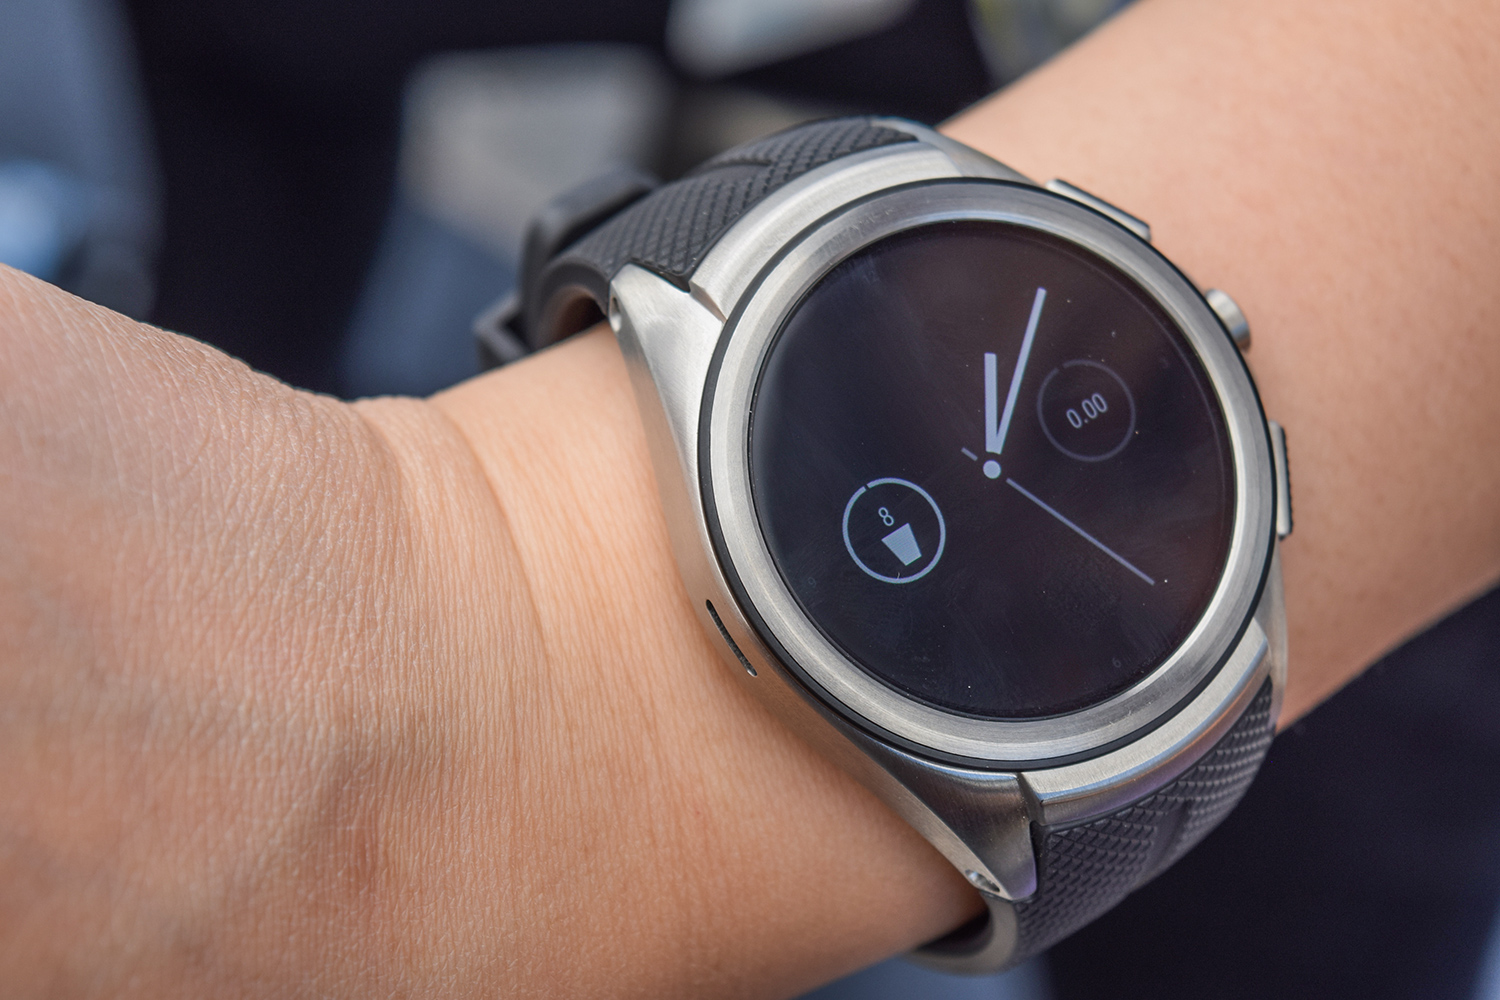 Upcoming Android Wear Smartwatches